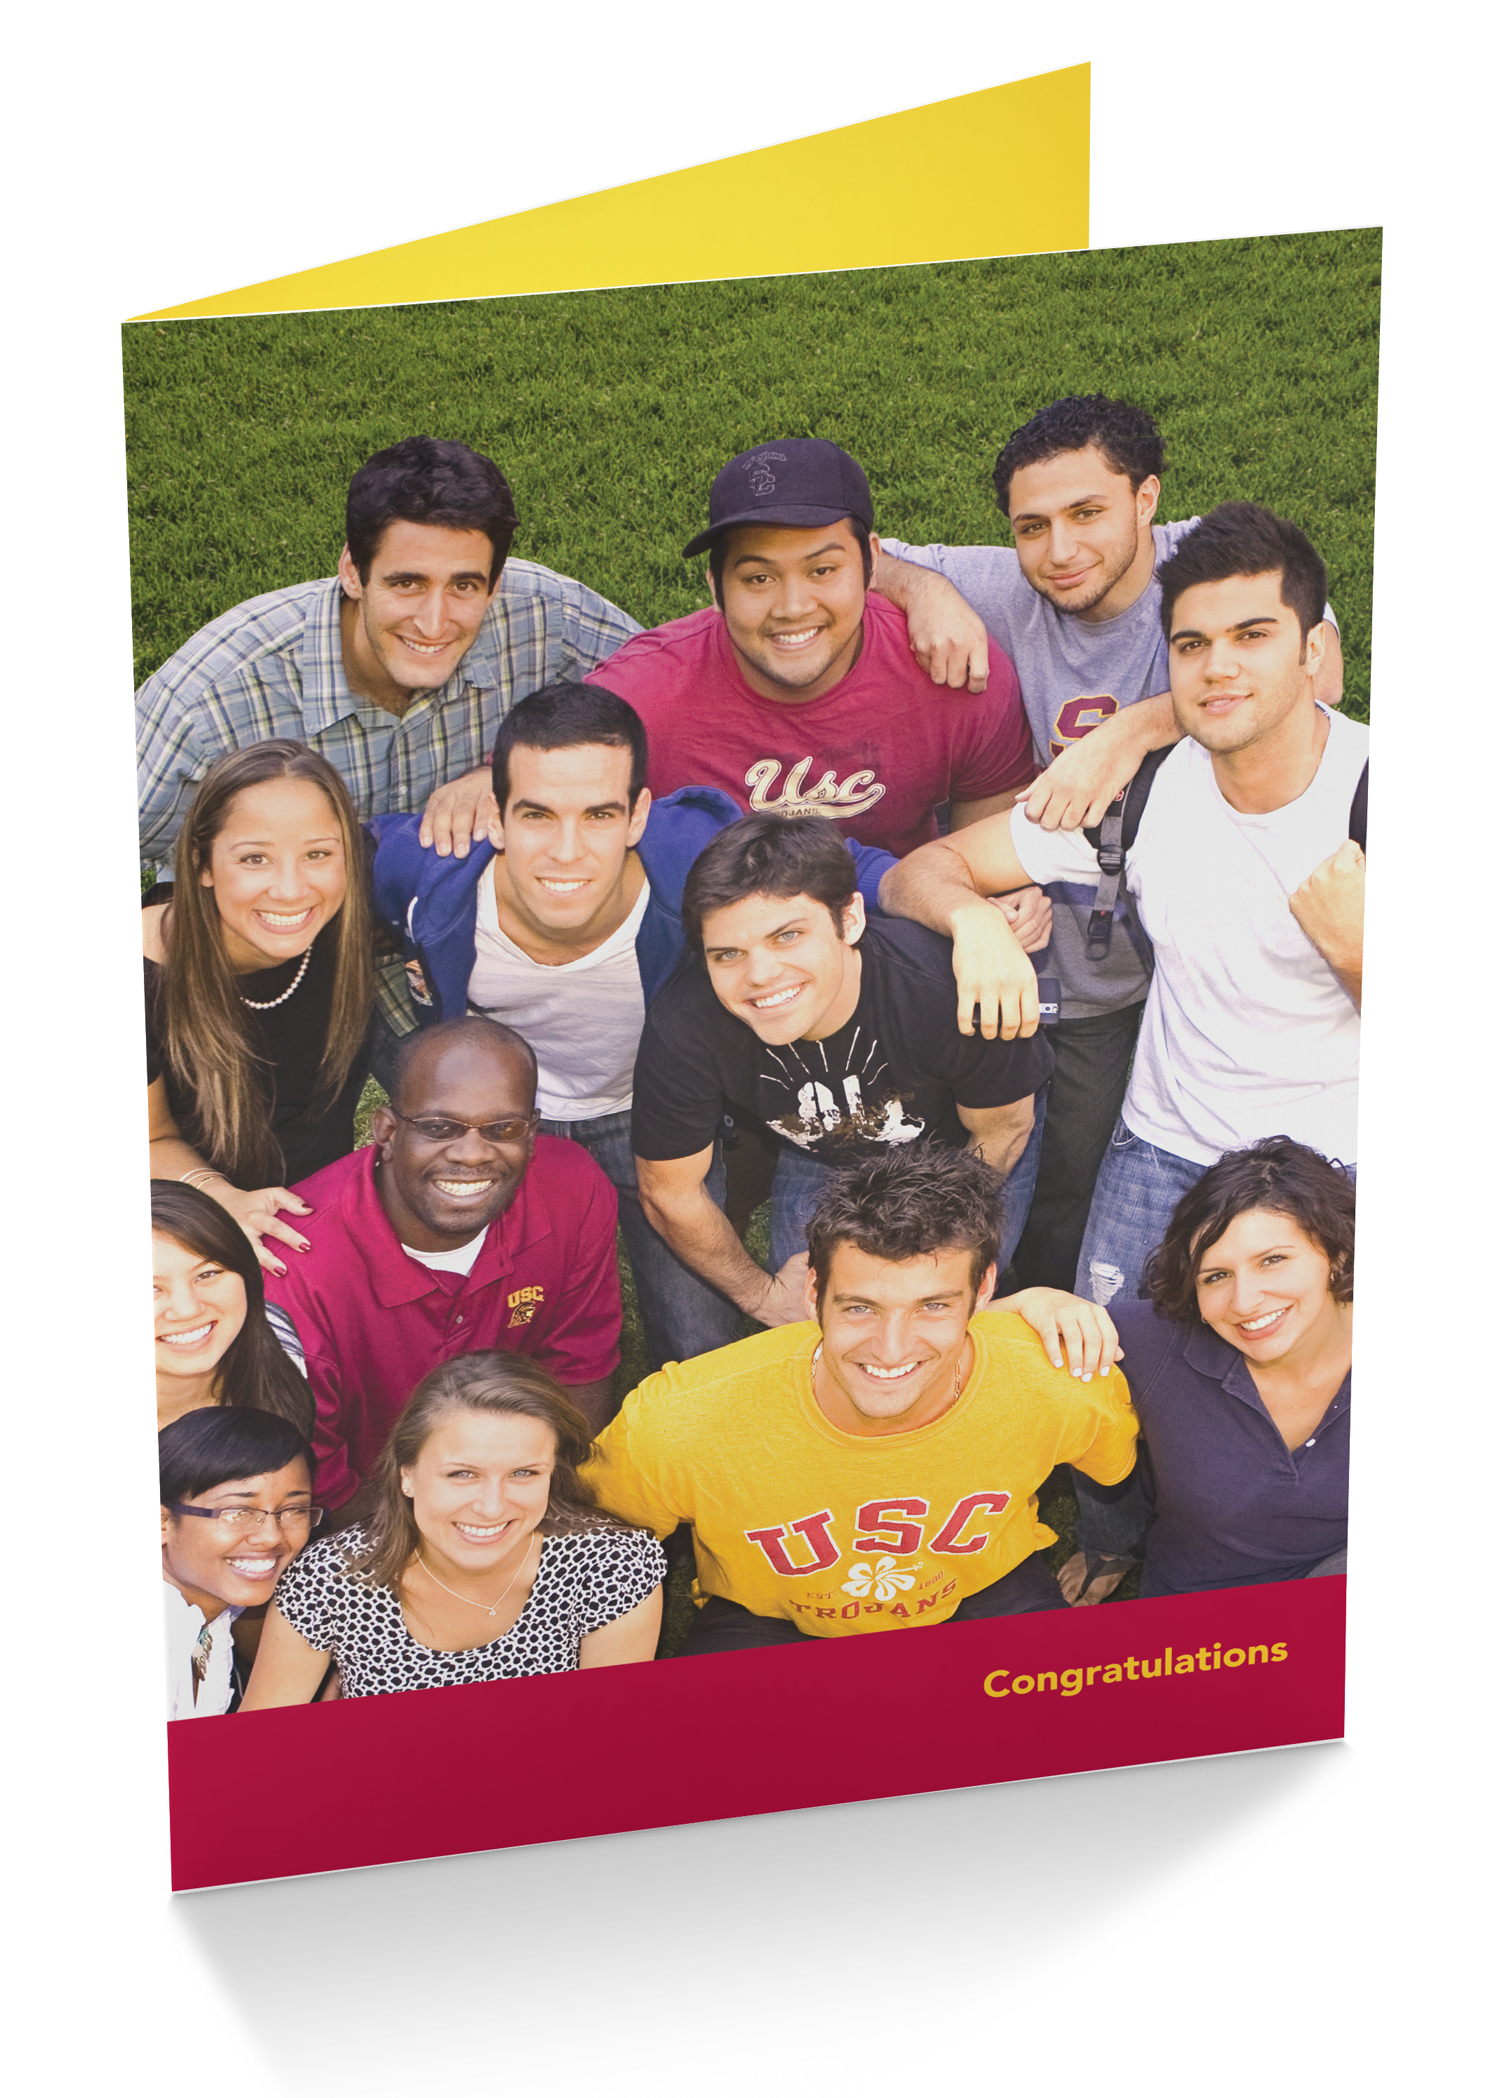 USC-Welcome-Cover.jpg